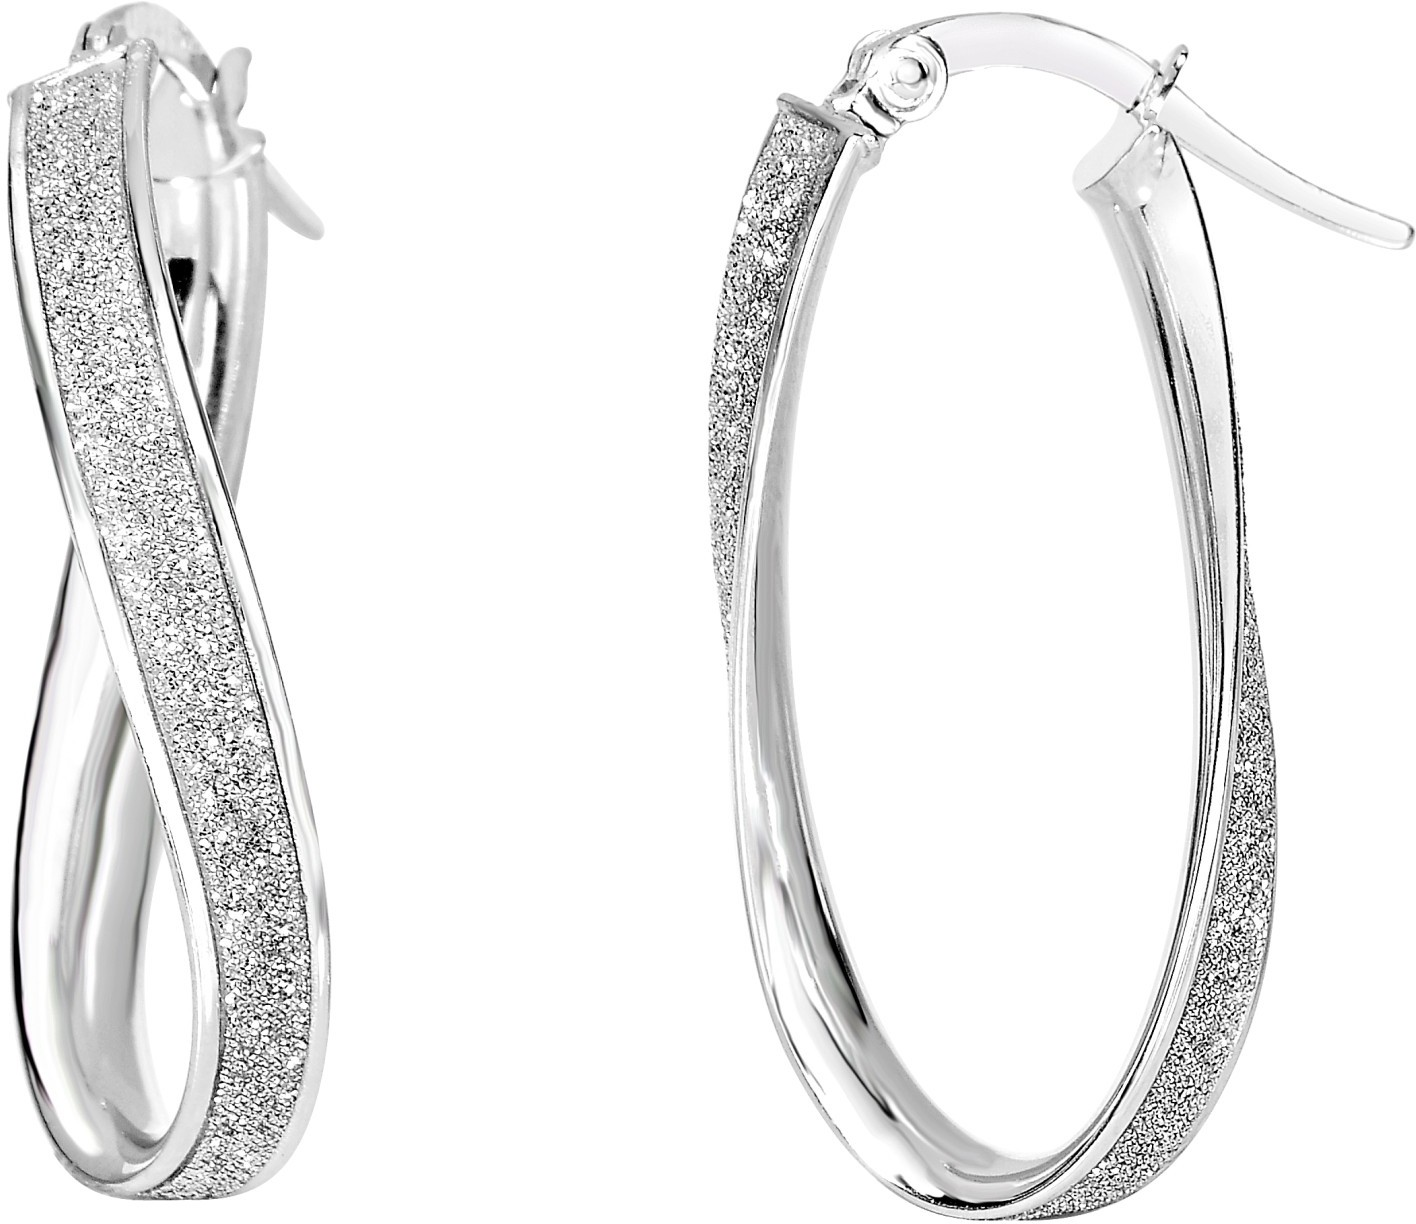 "14K White Gold 3.75mm (1/7"") Shiny Twisted Oval Hoop Earrings"